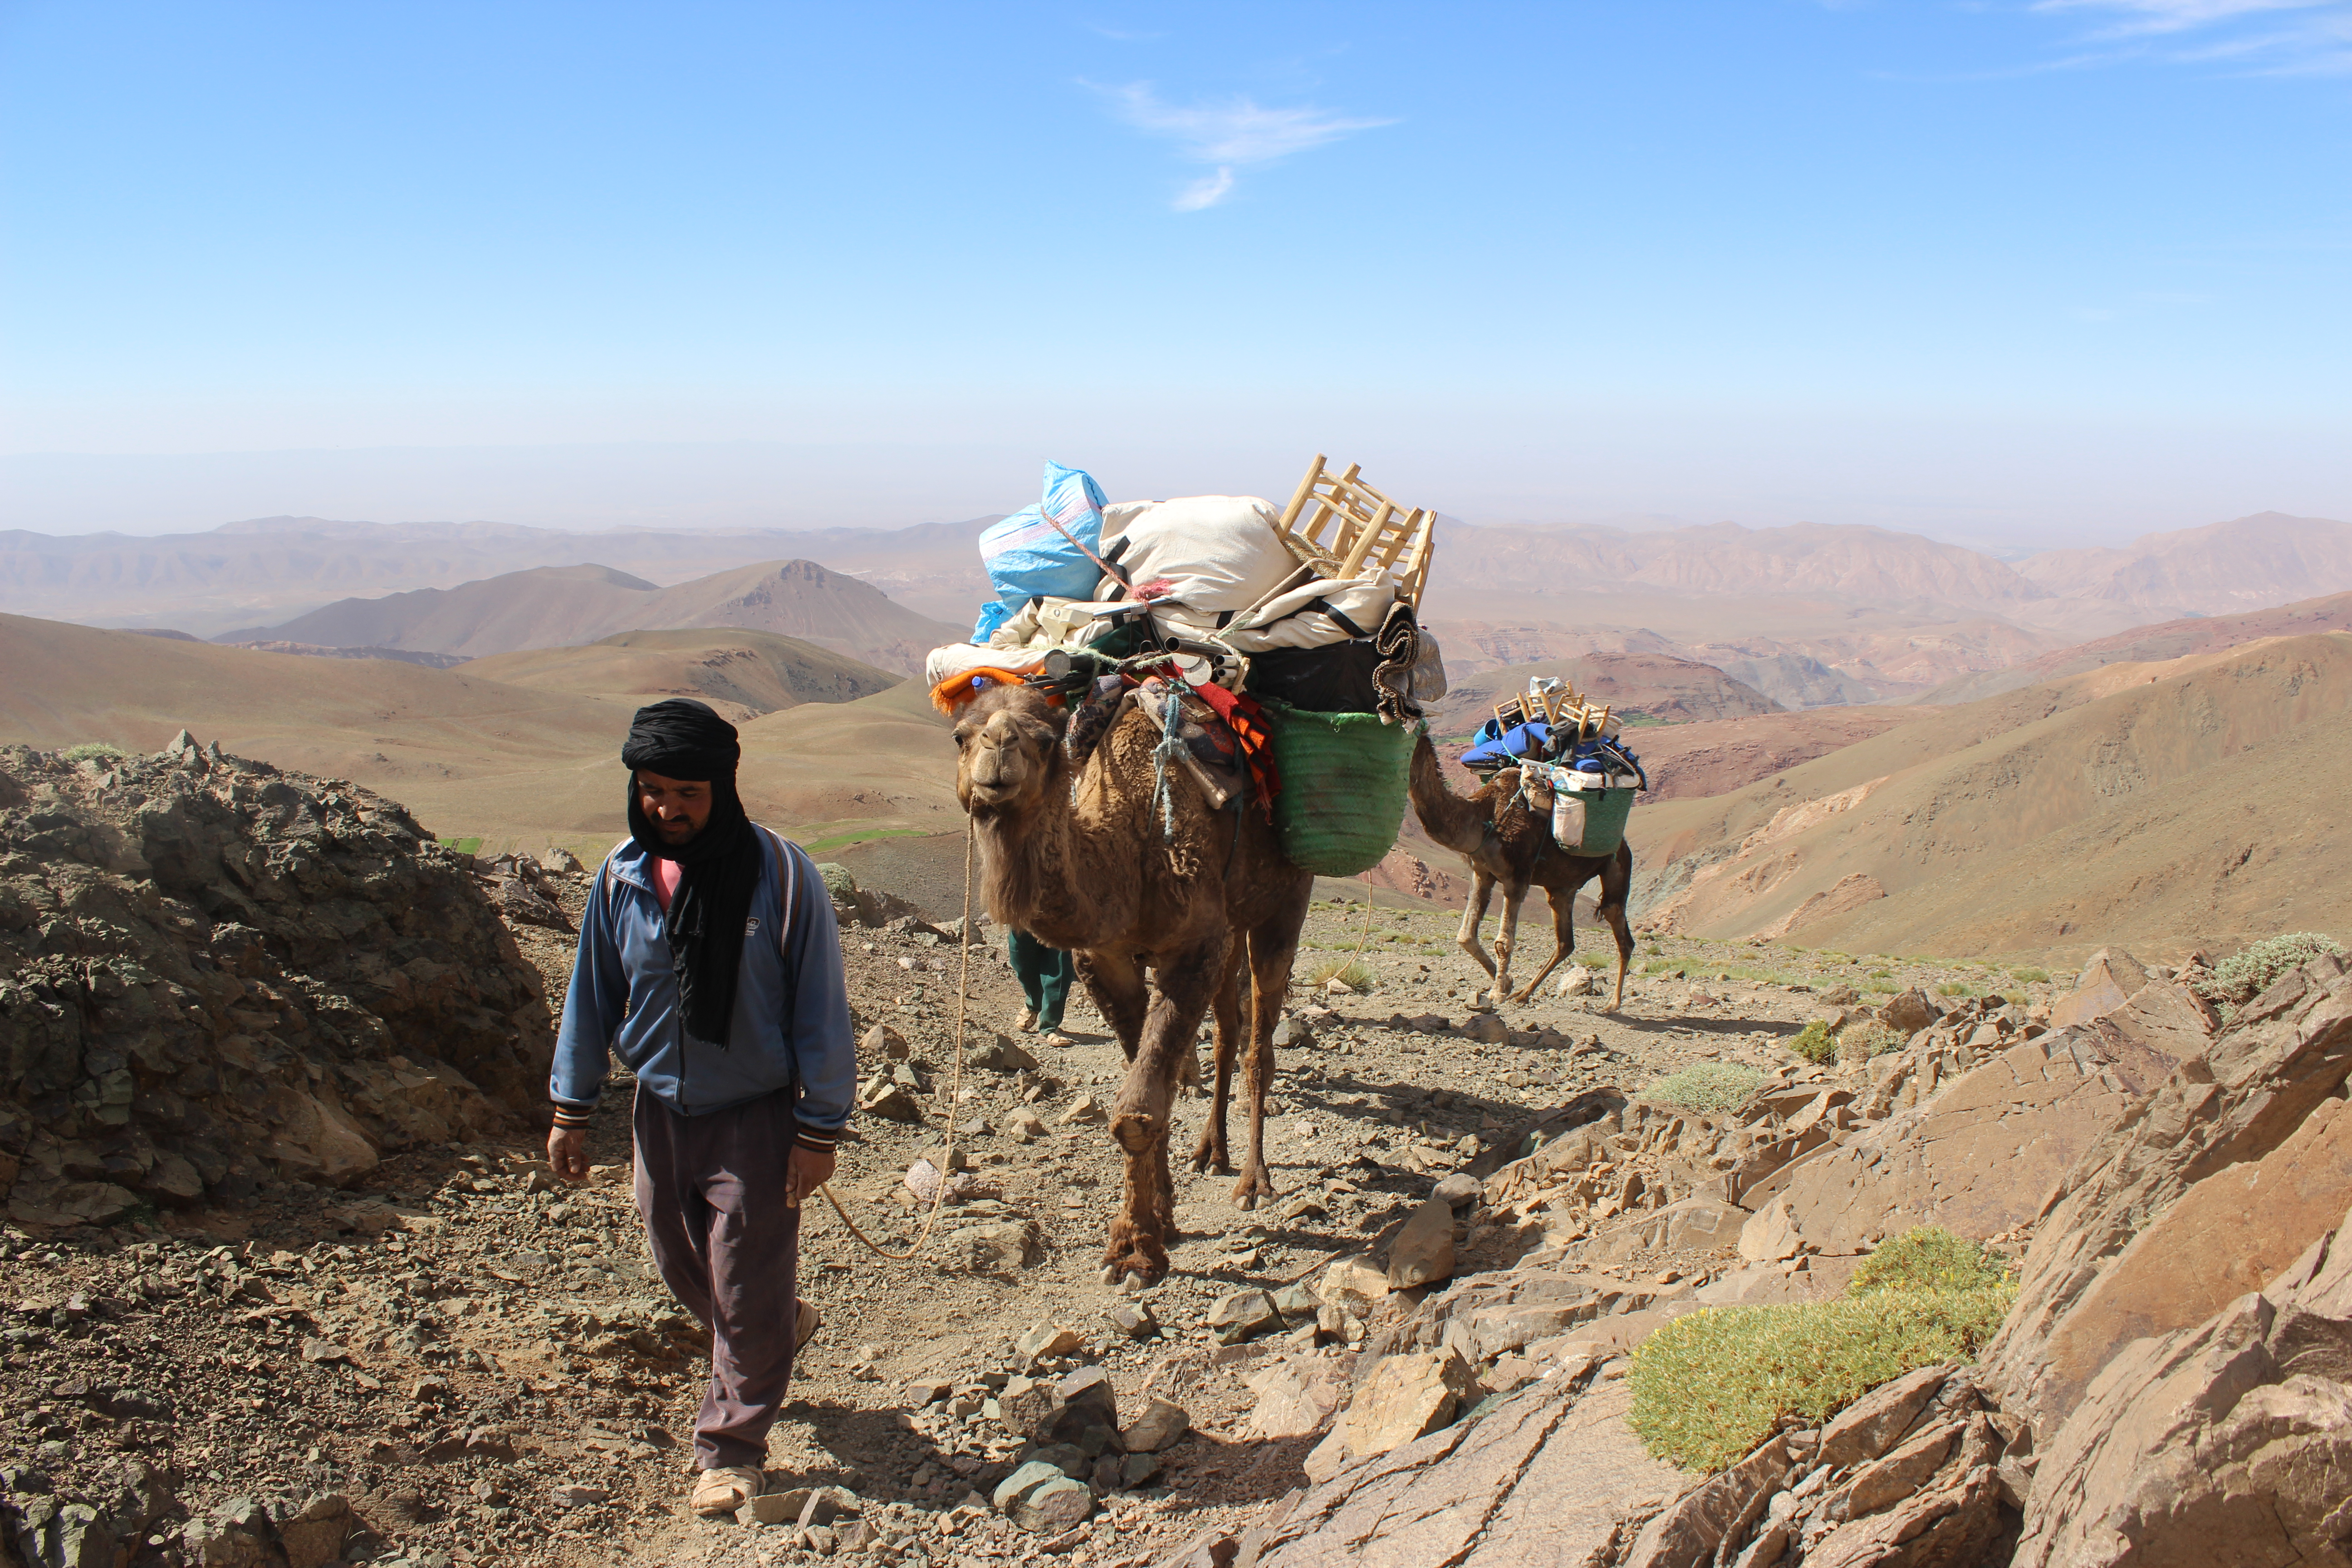 Camels lead the way into the M'goun massif, High Atlas mountains, Morocco